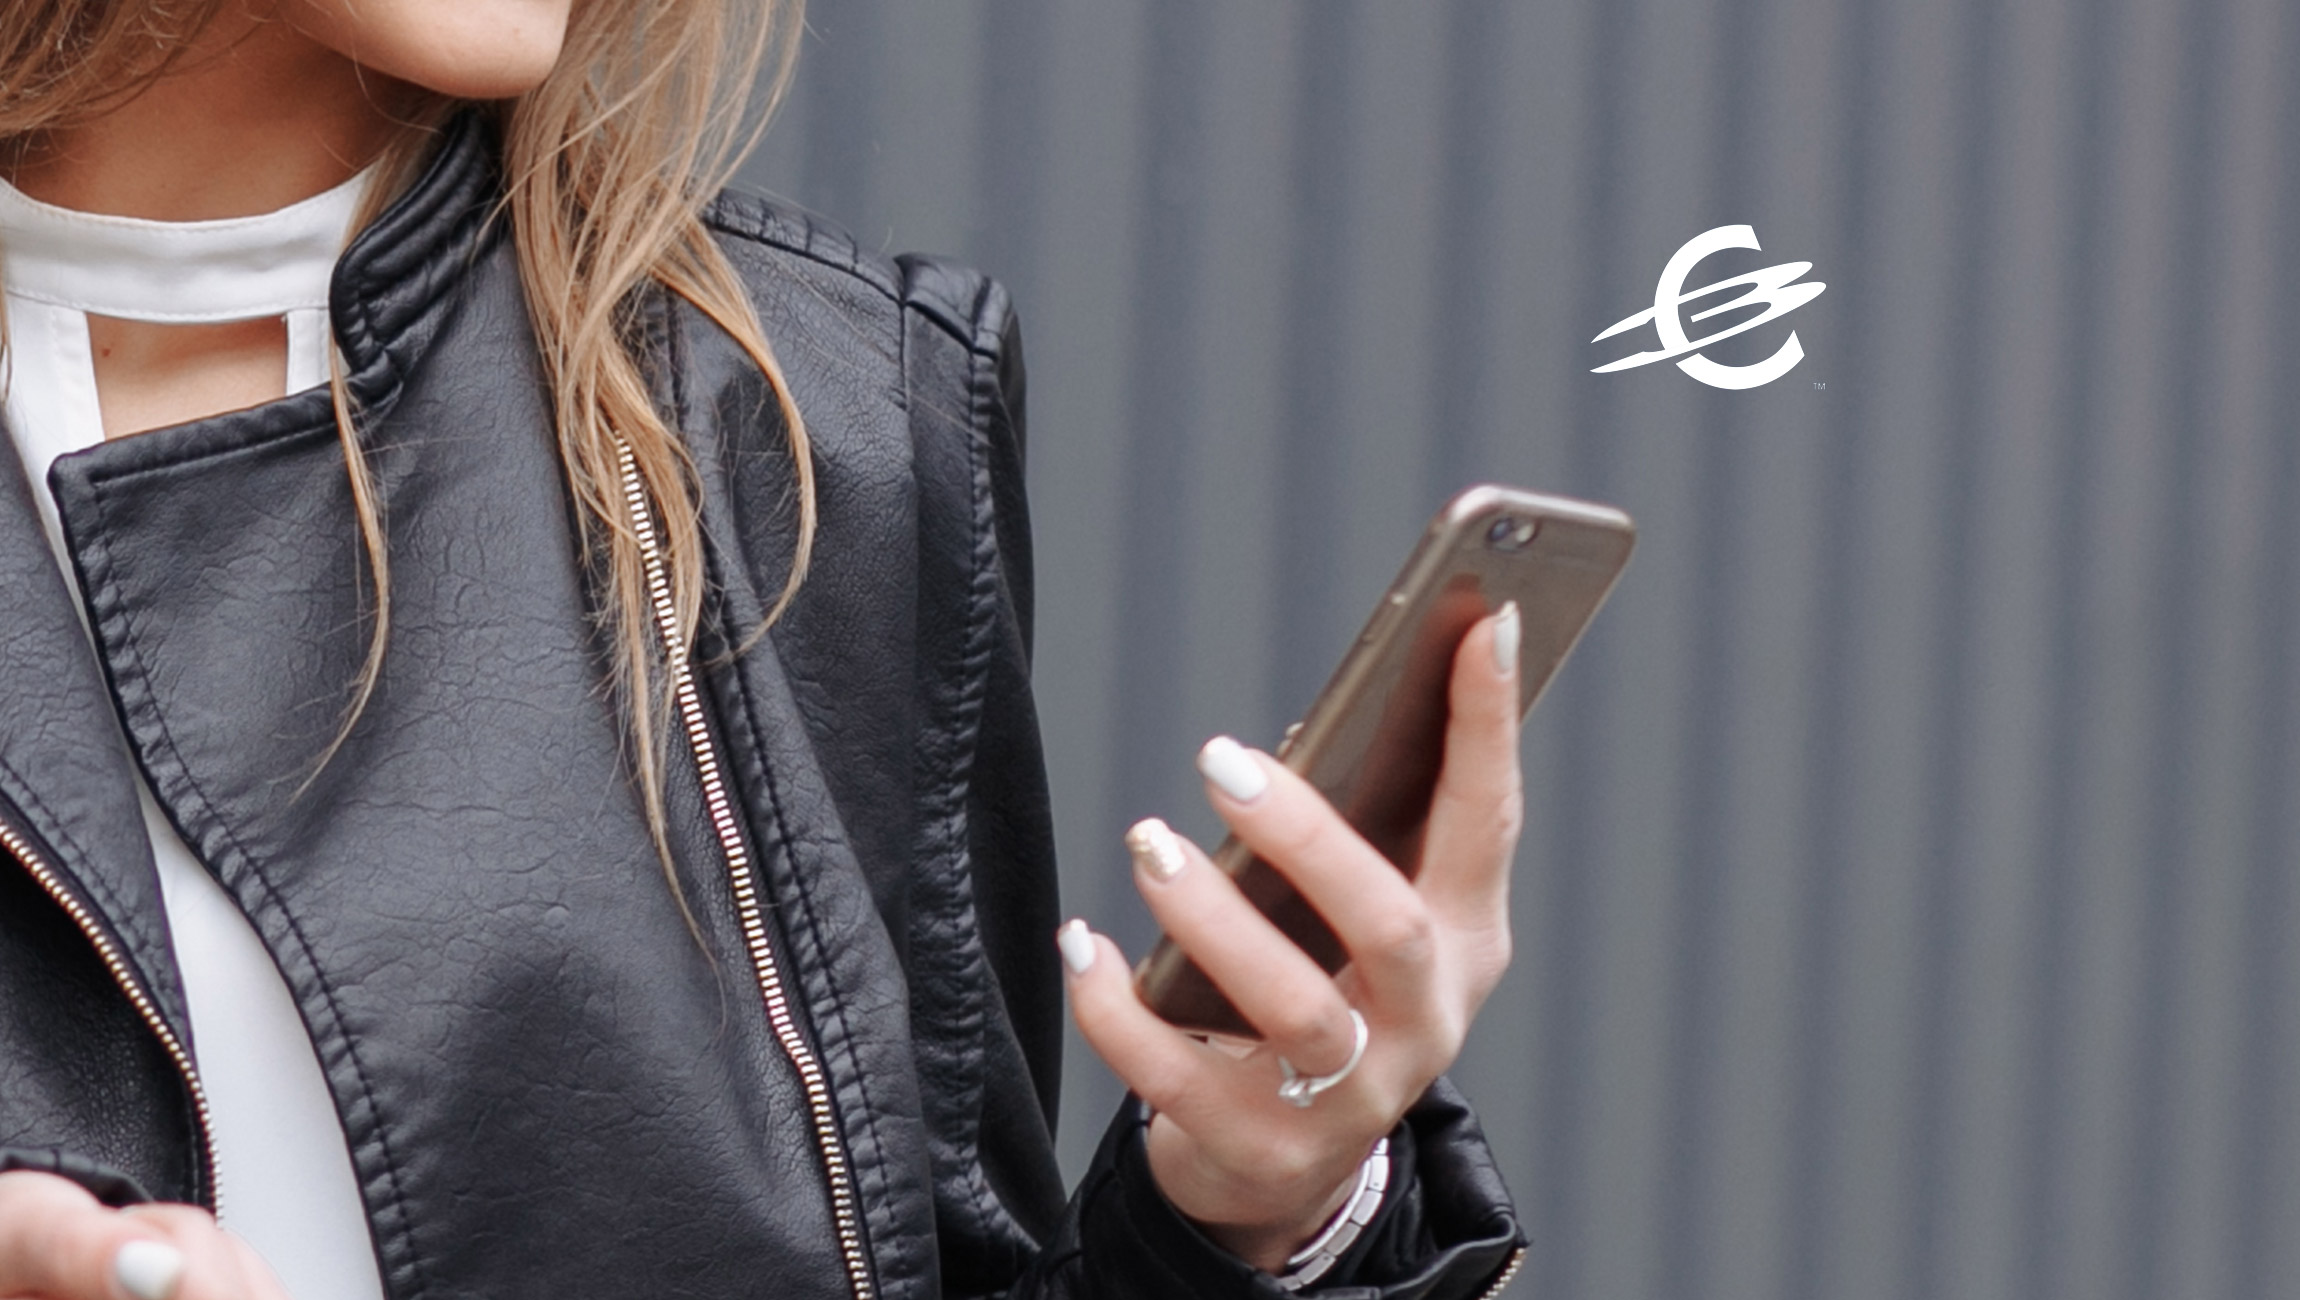 3Cinteractive Releases 4th Annual Mobile Loyalty Report, Highlighting Customer Demand for Conversational Experiences